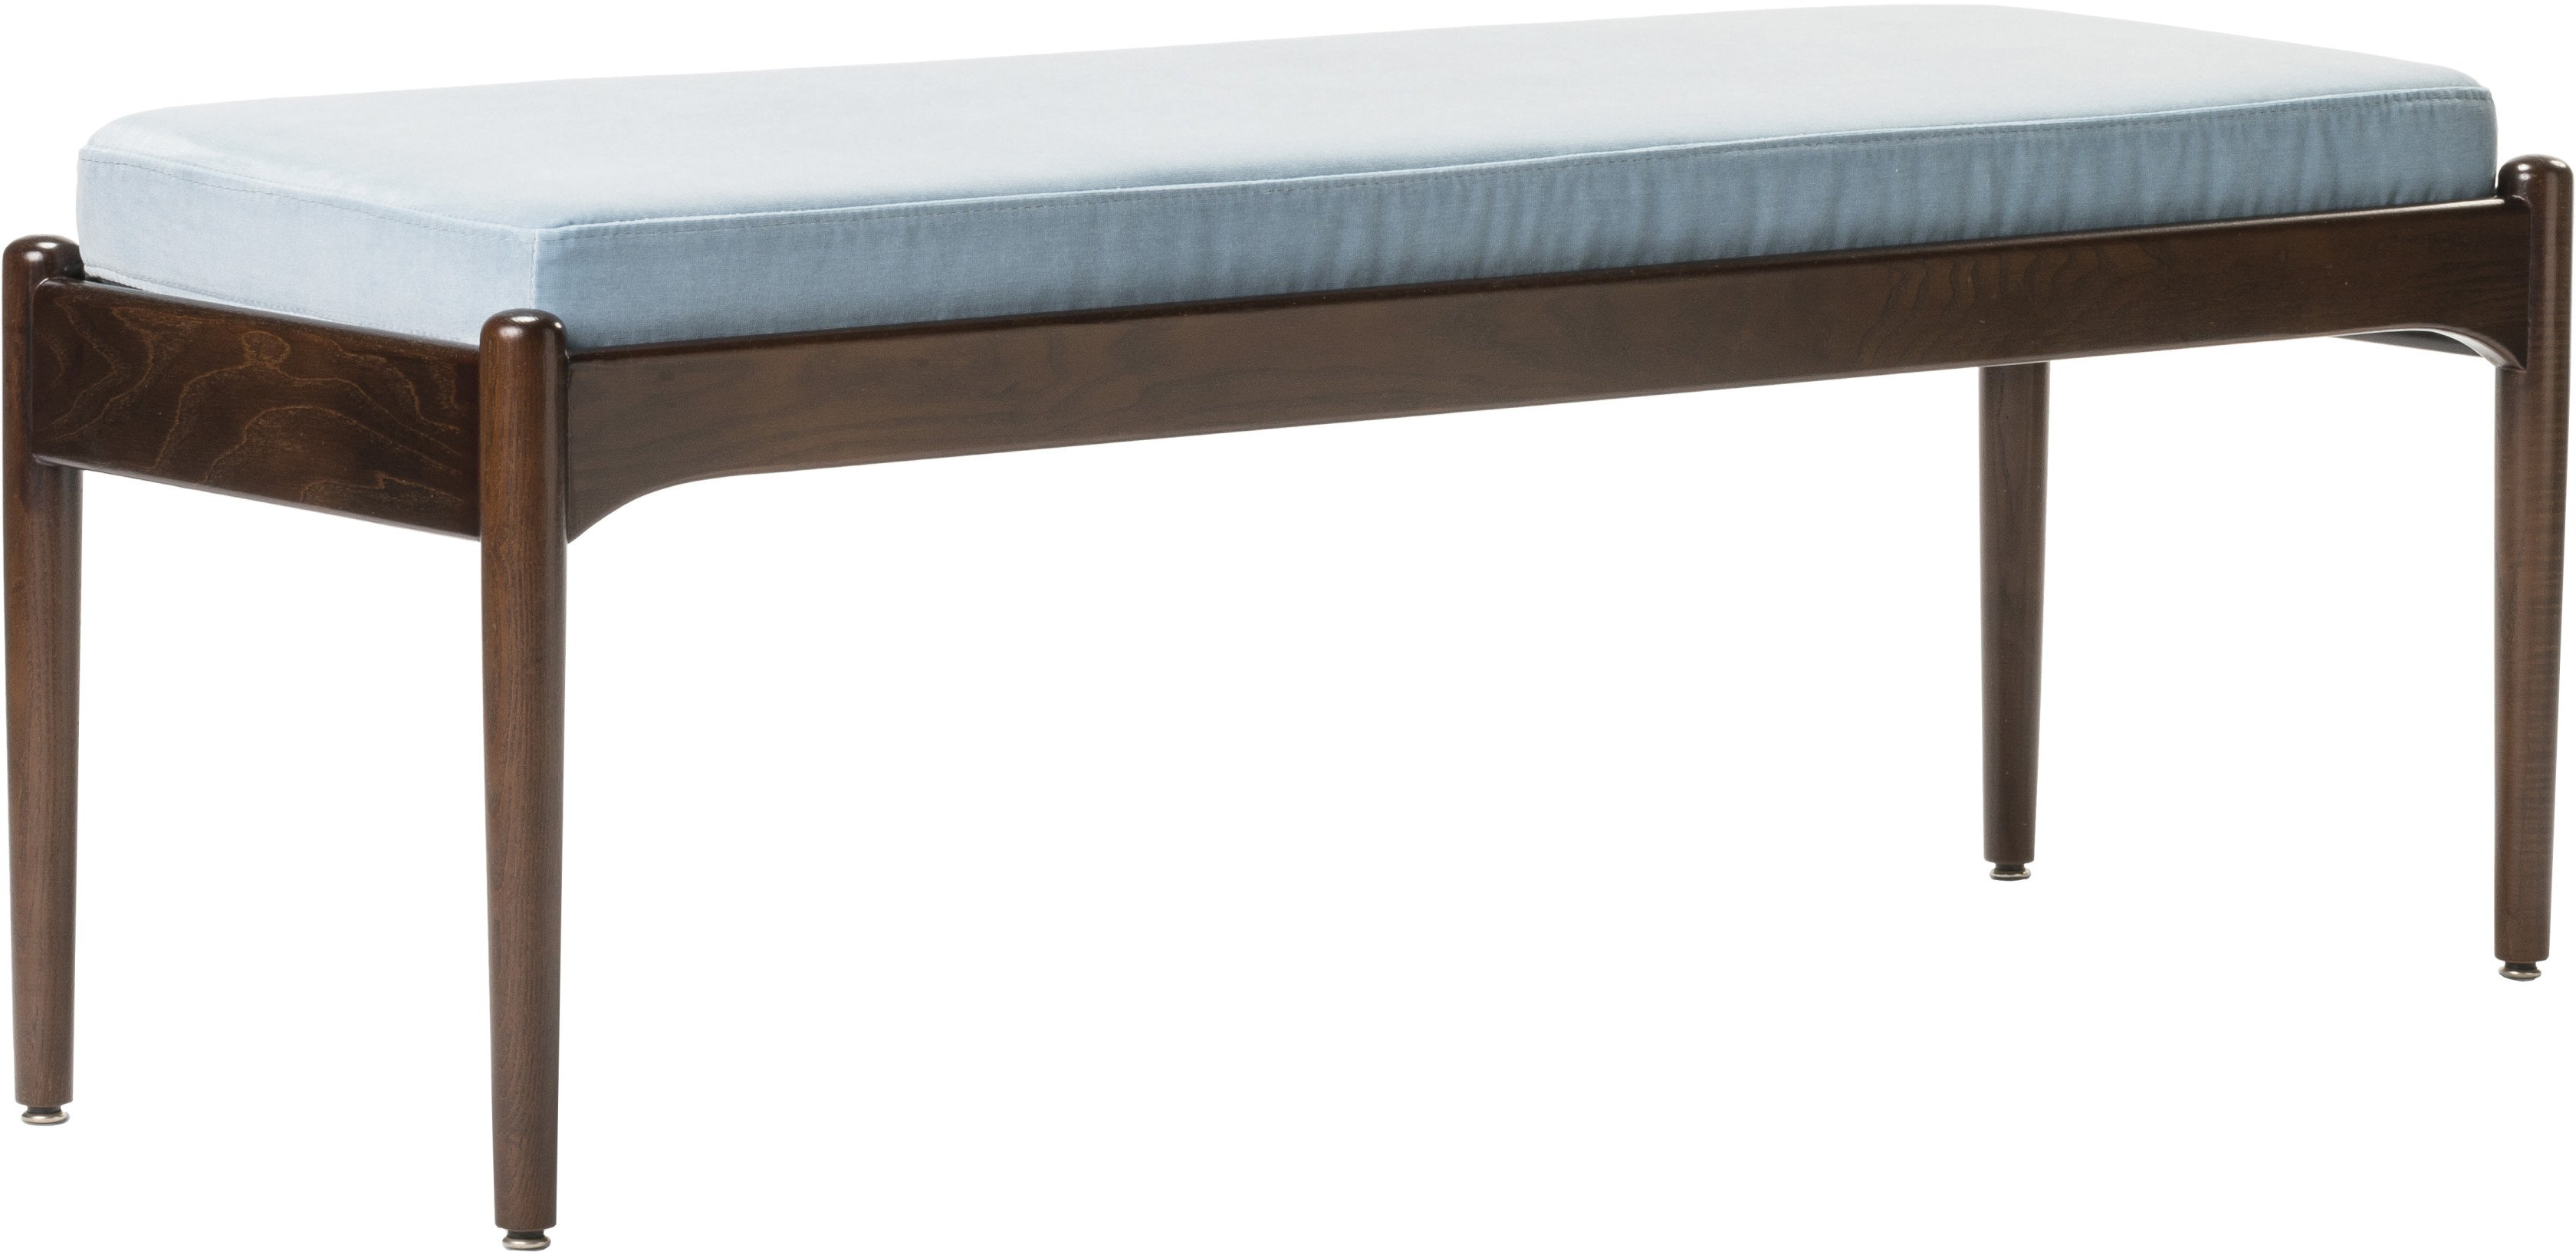 Museu Bench Light Blue, Olaio